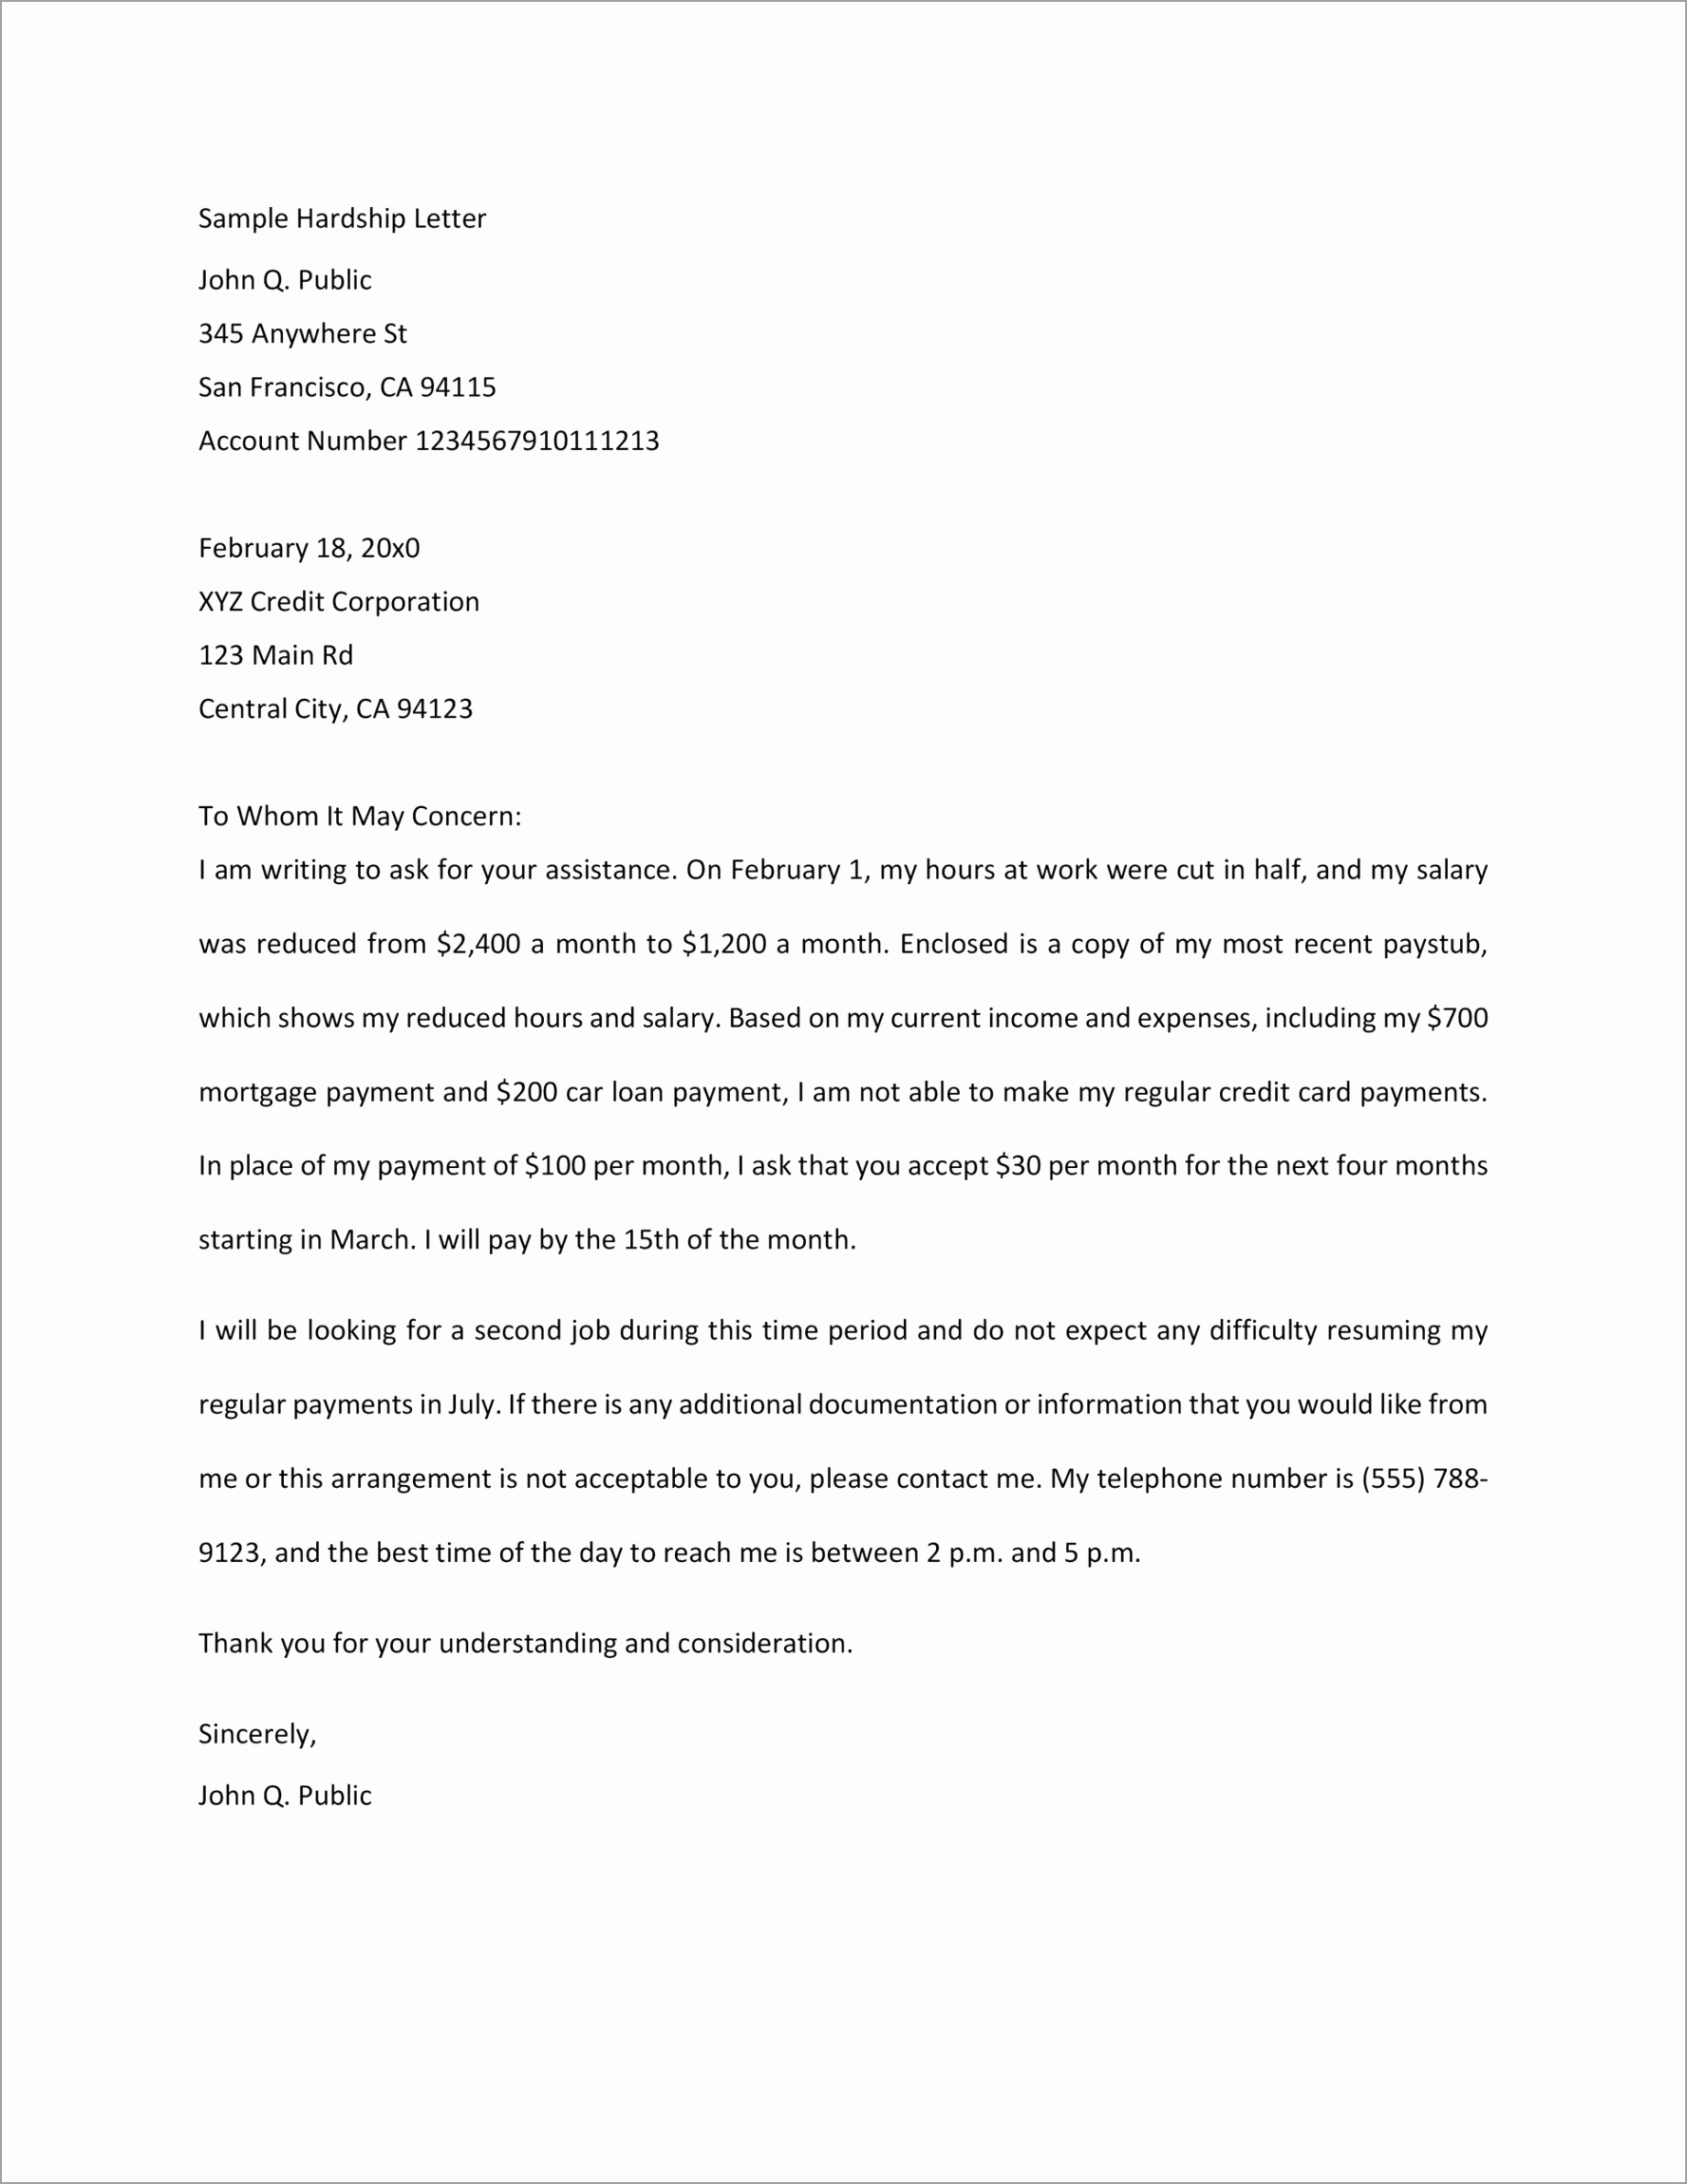 Hardship Letter Template 05 euopo